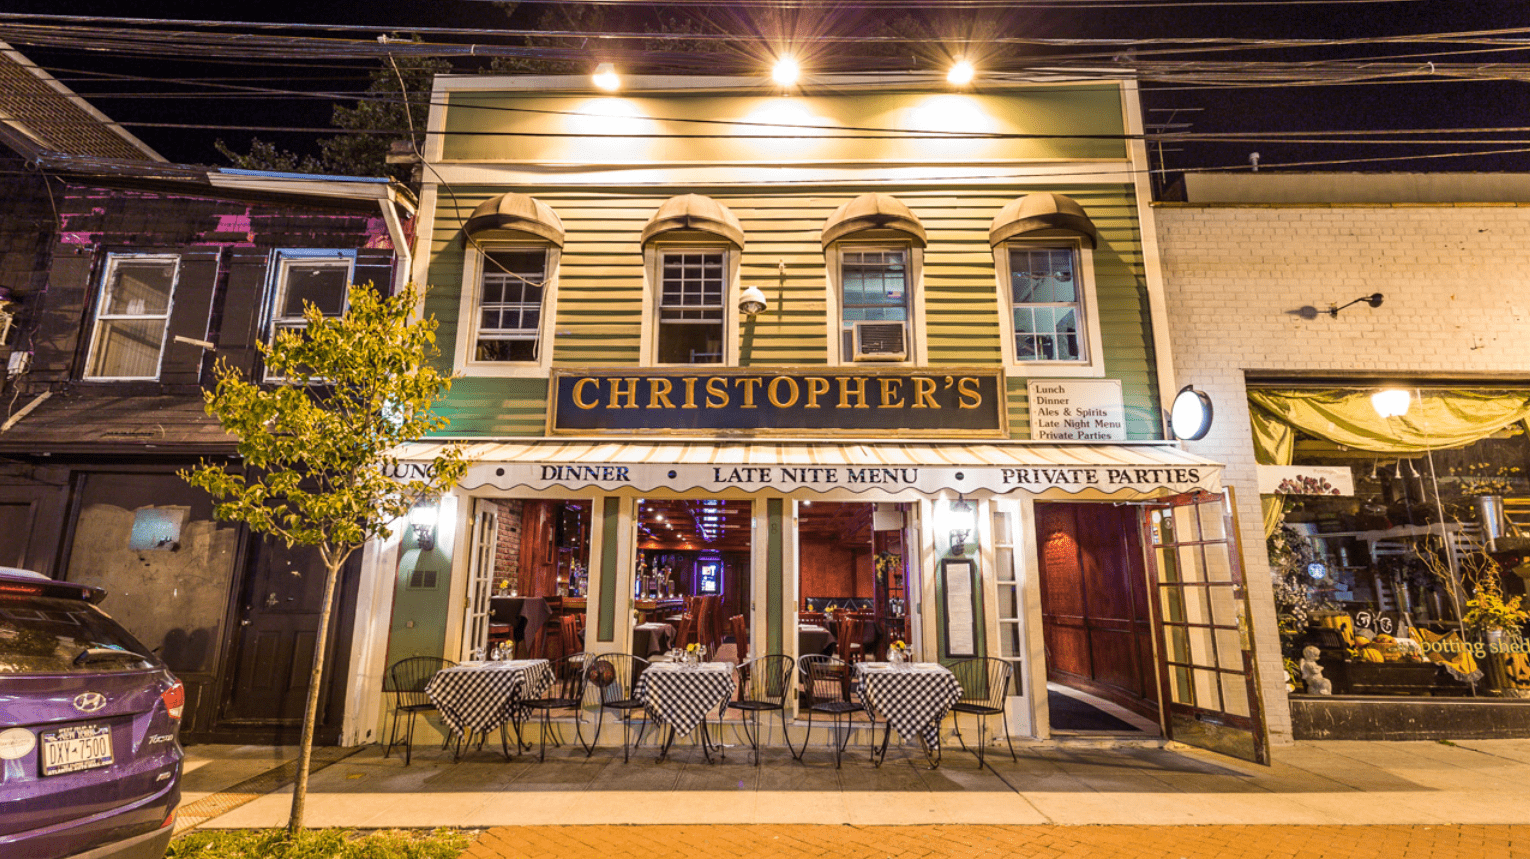 Exterior of Christophers